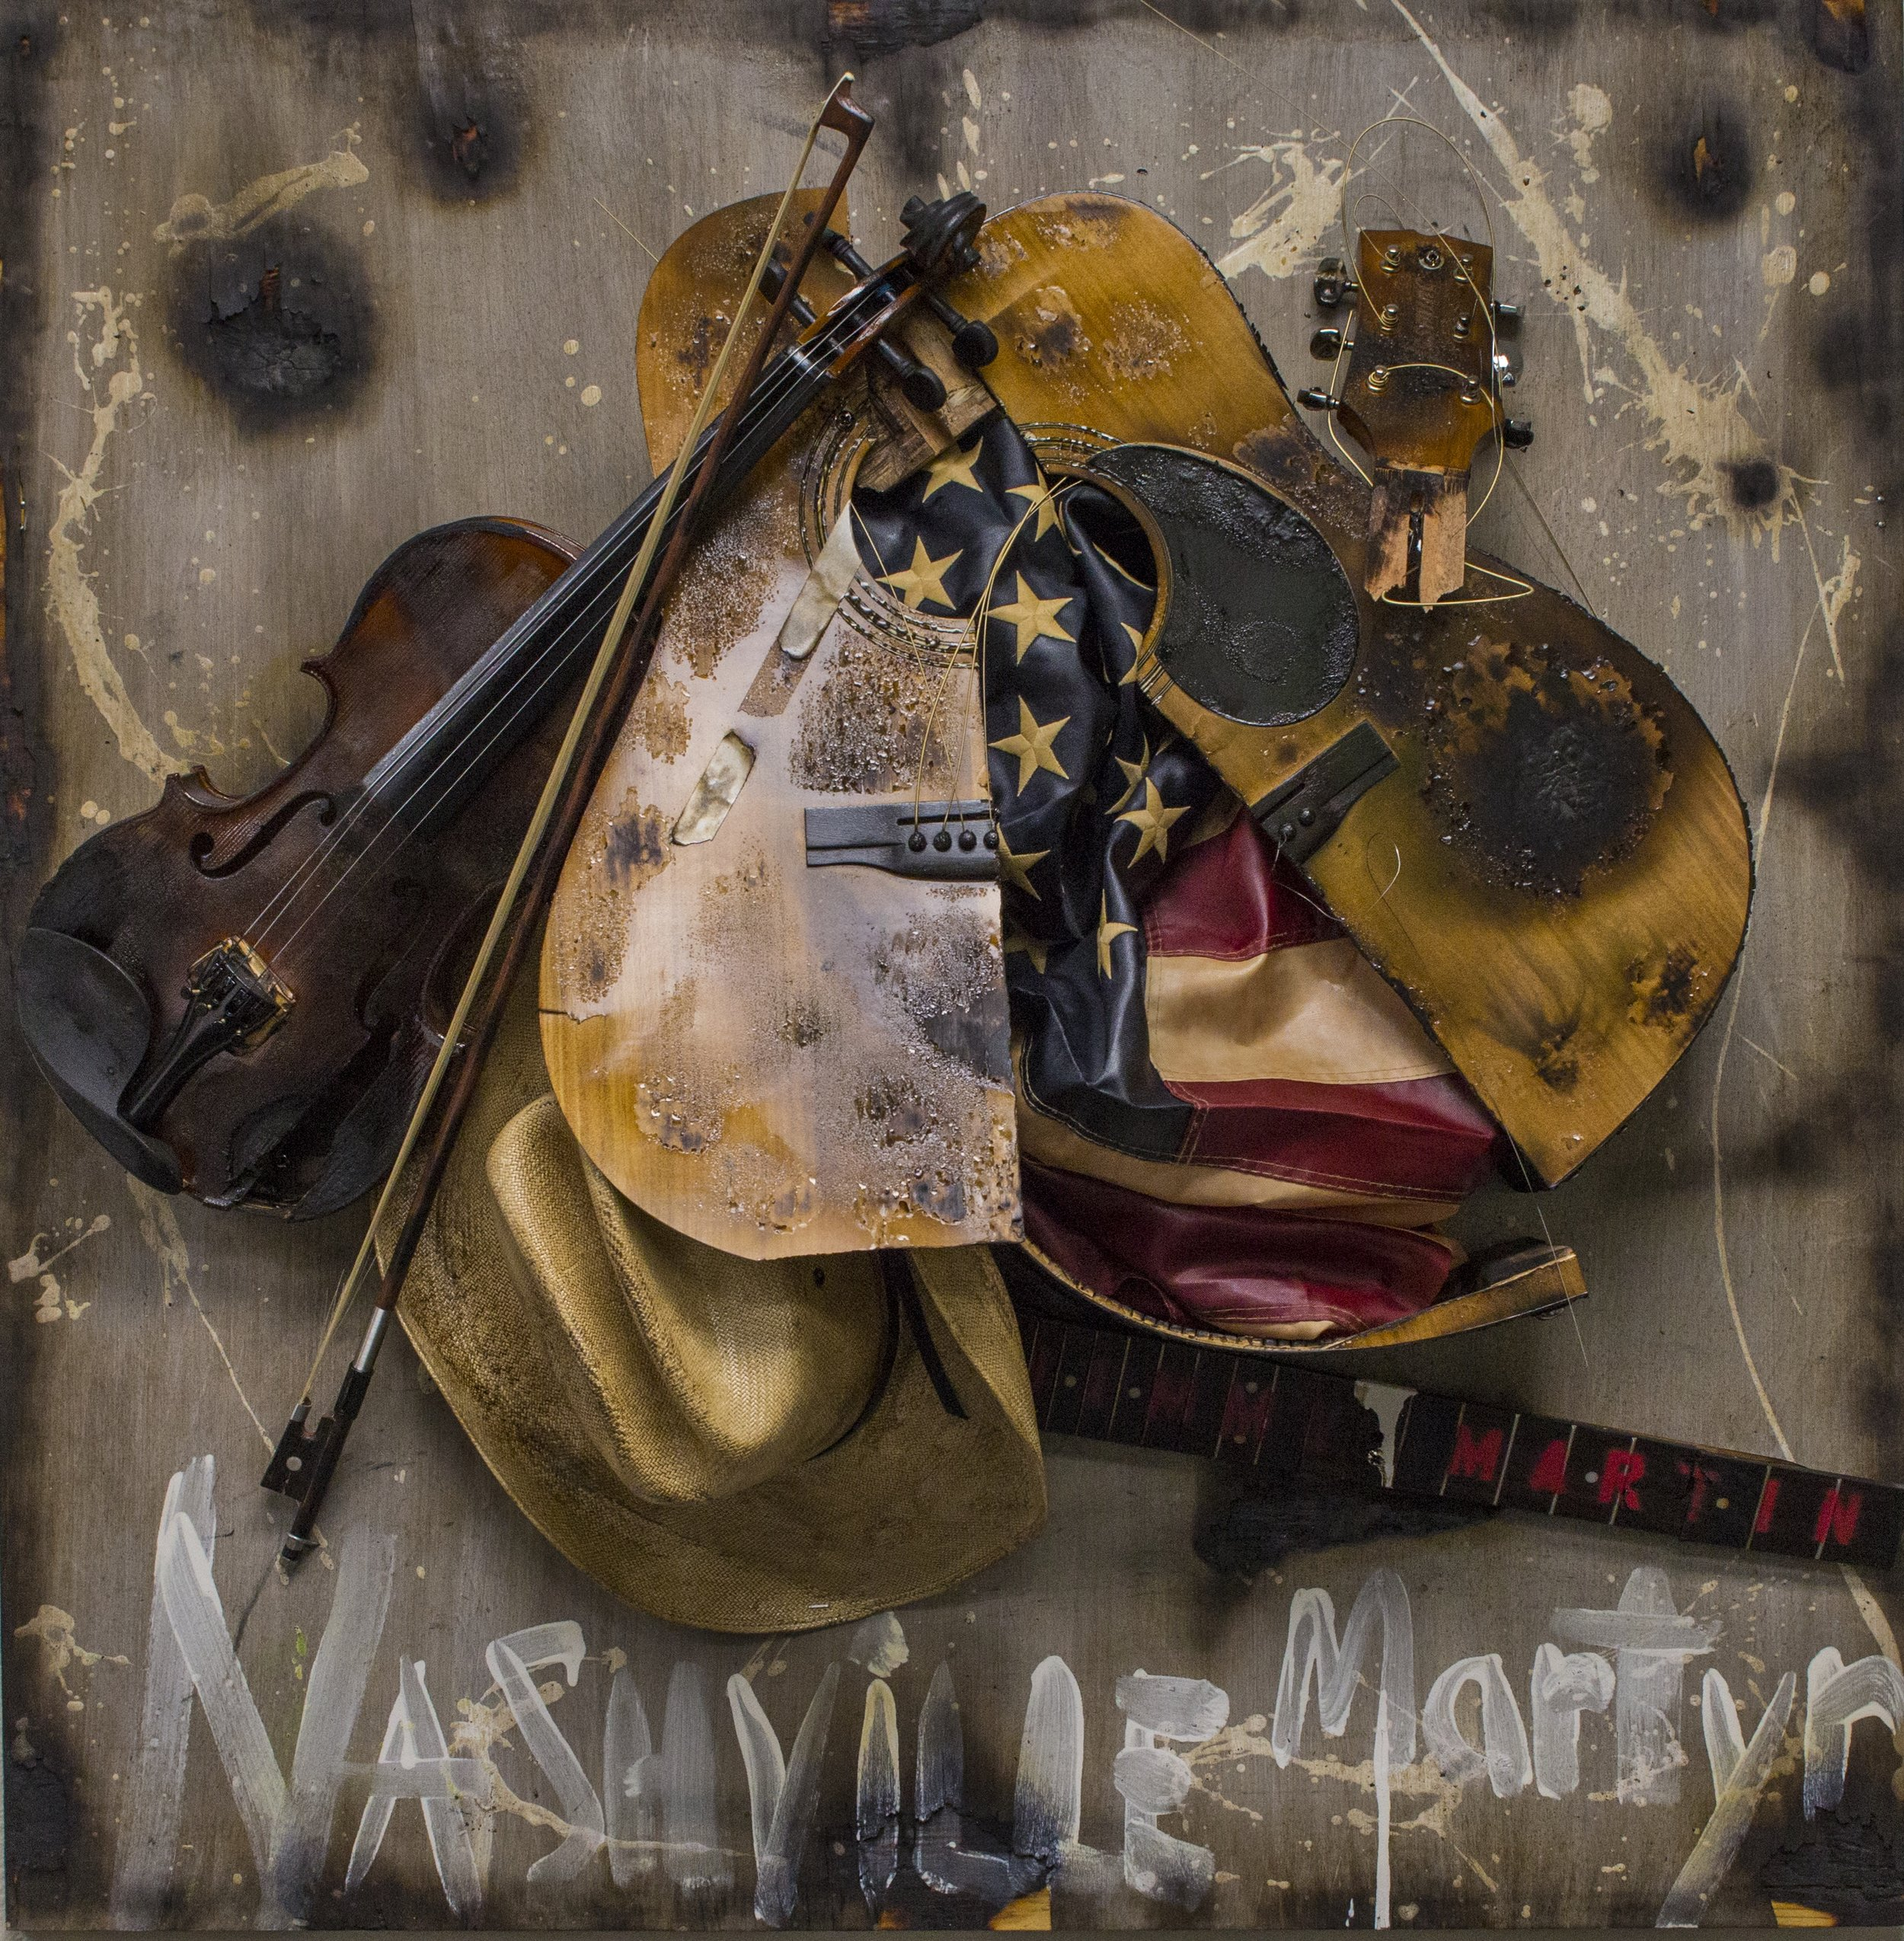 """Jimmy Martin Nashville Martyr"" by Bernie Taupin, a piece from the ""True American"" exhibition on display at Chase Contemporary in New York City."